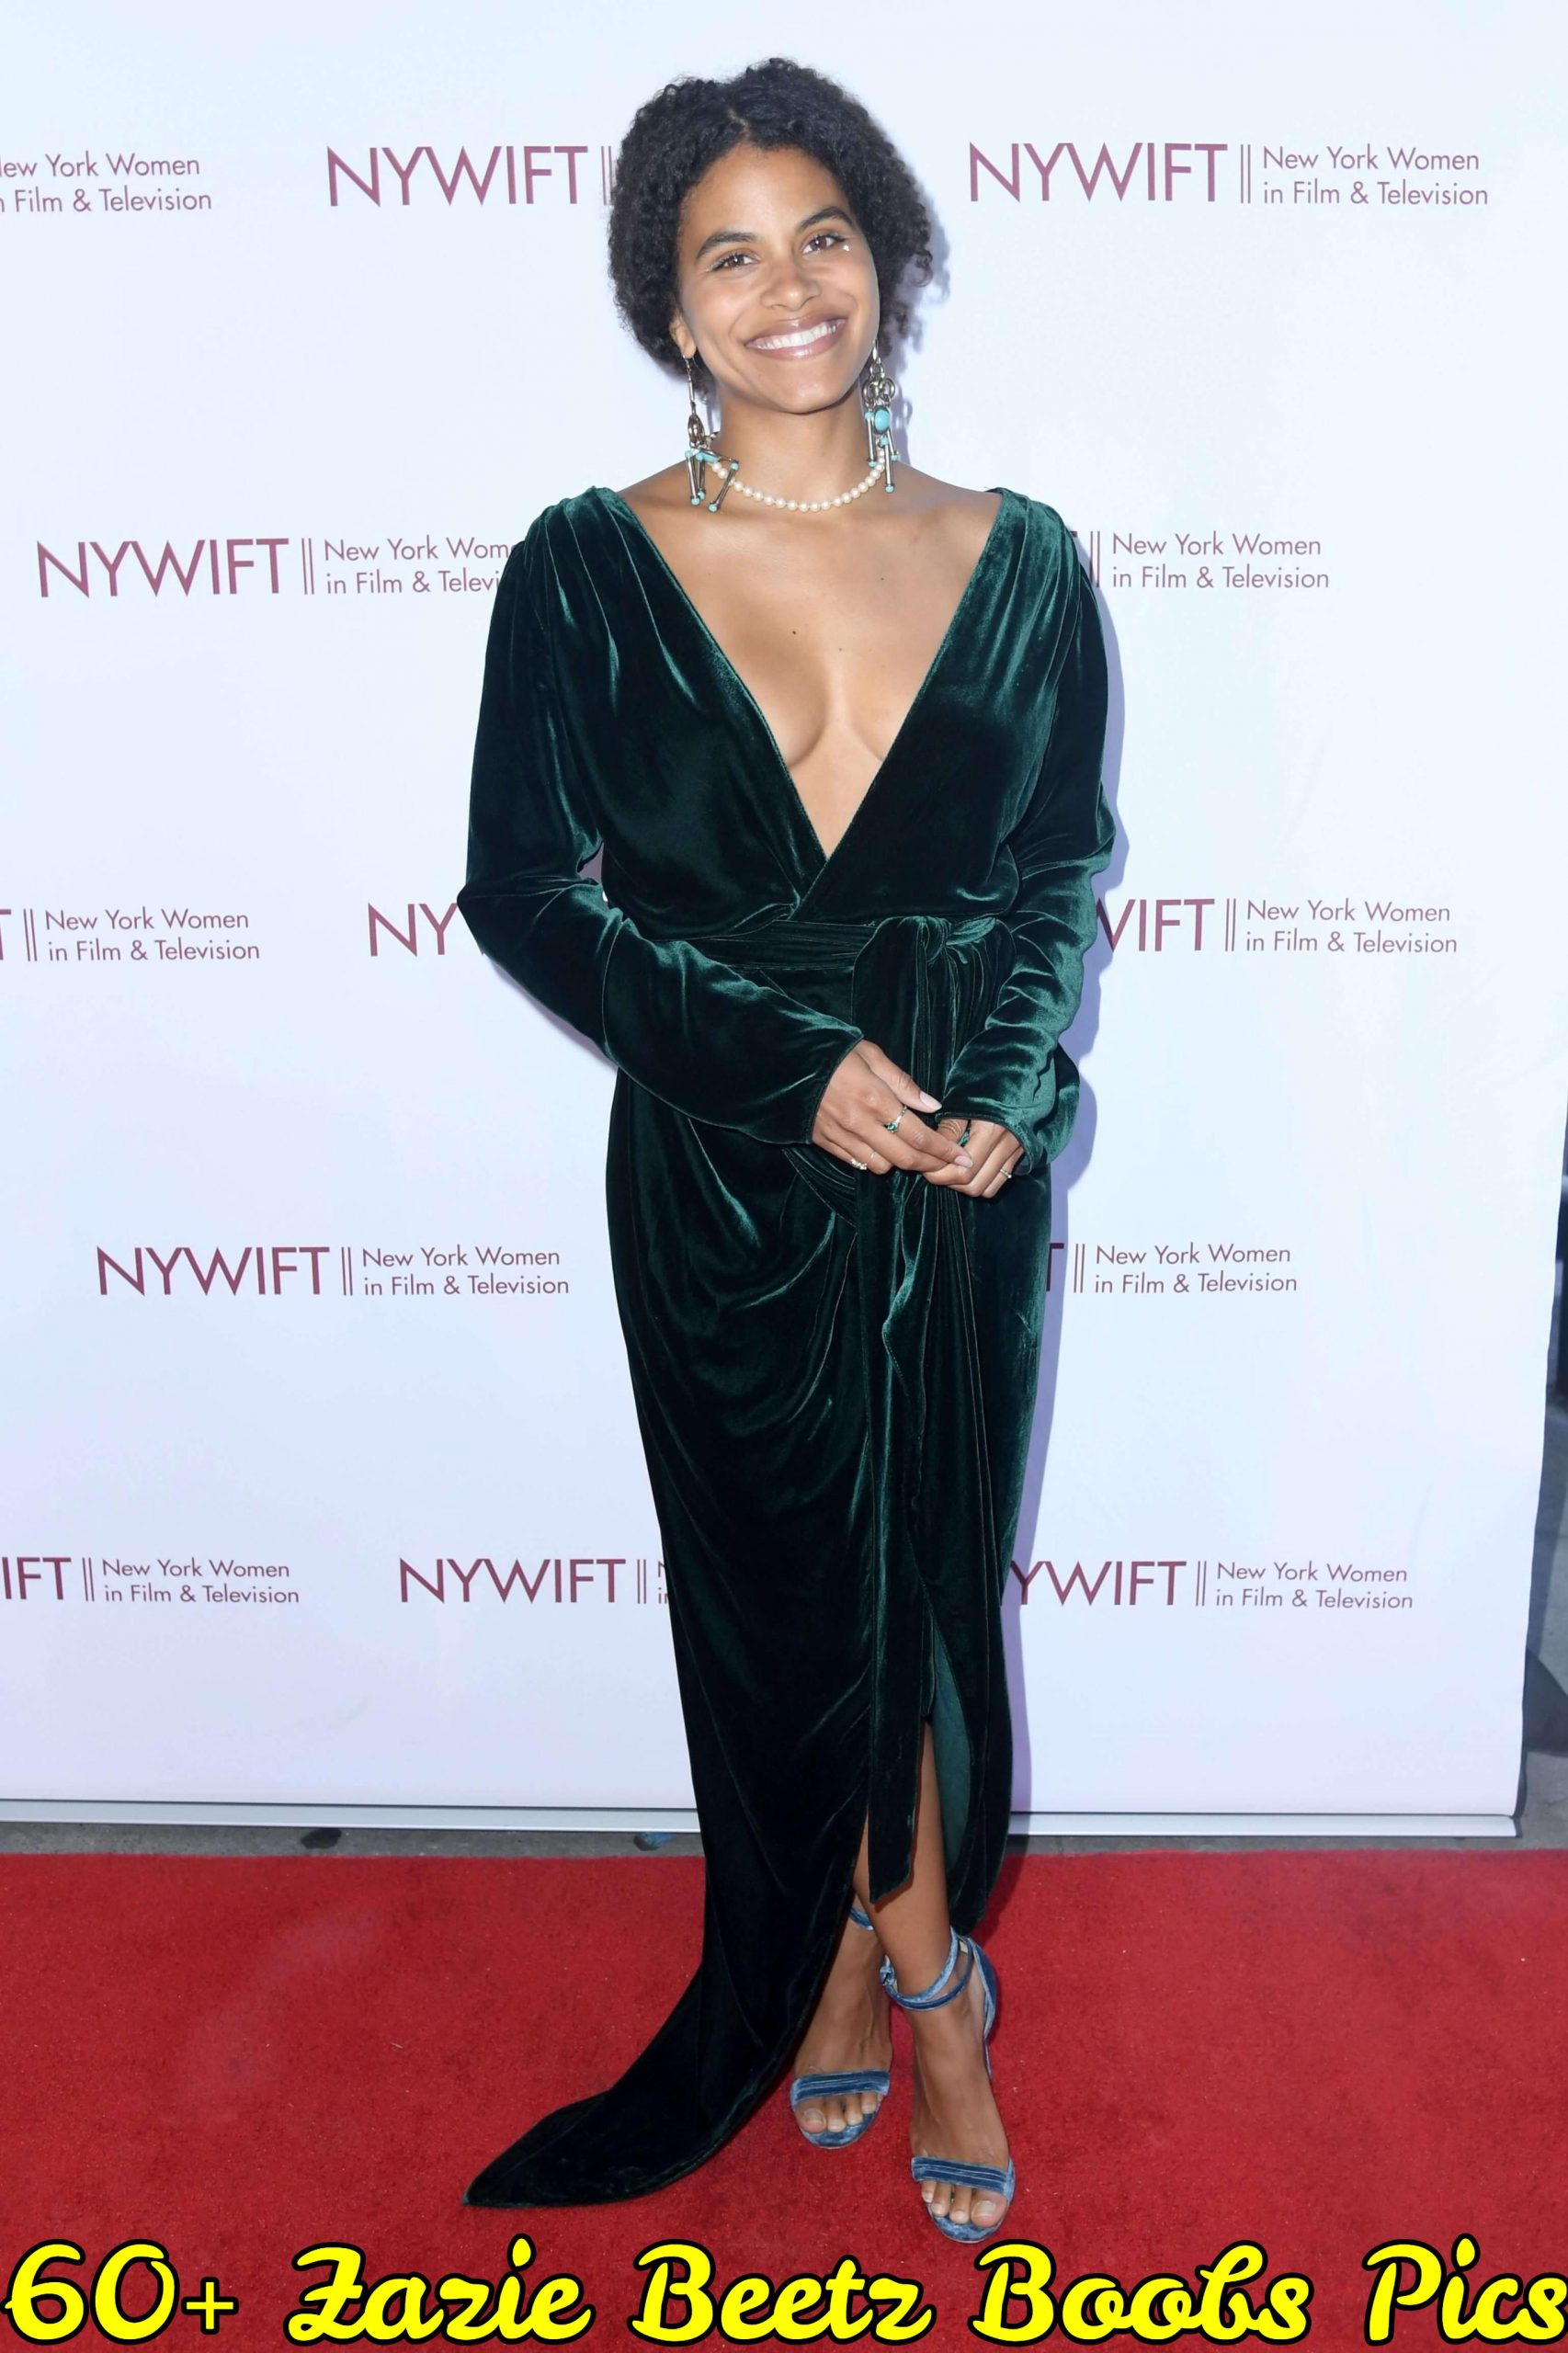 zazie beetz boobs pics